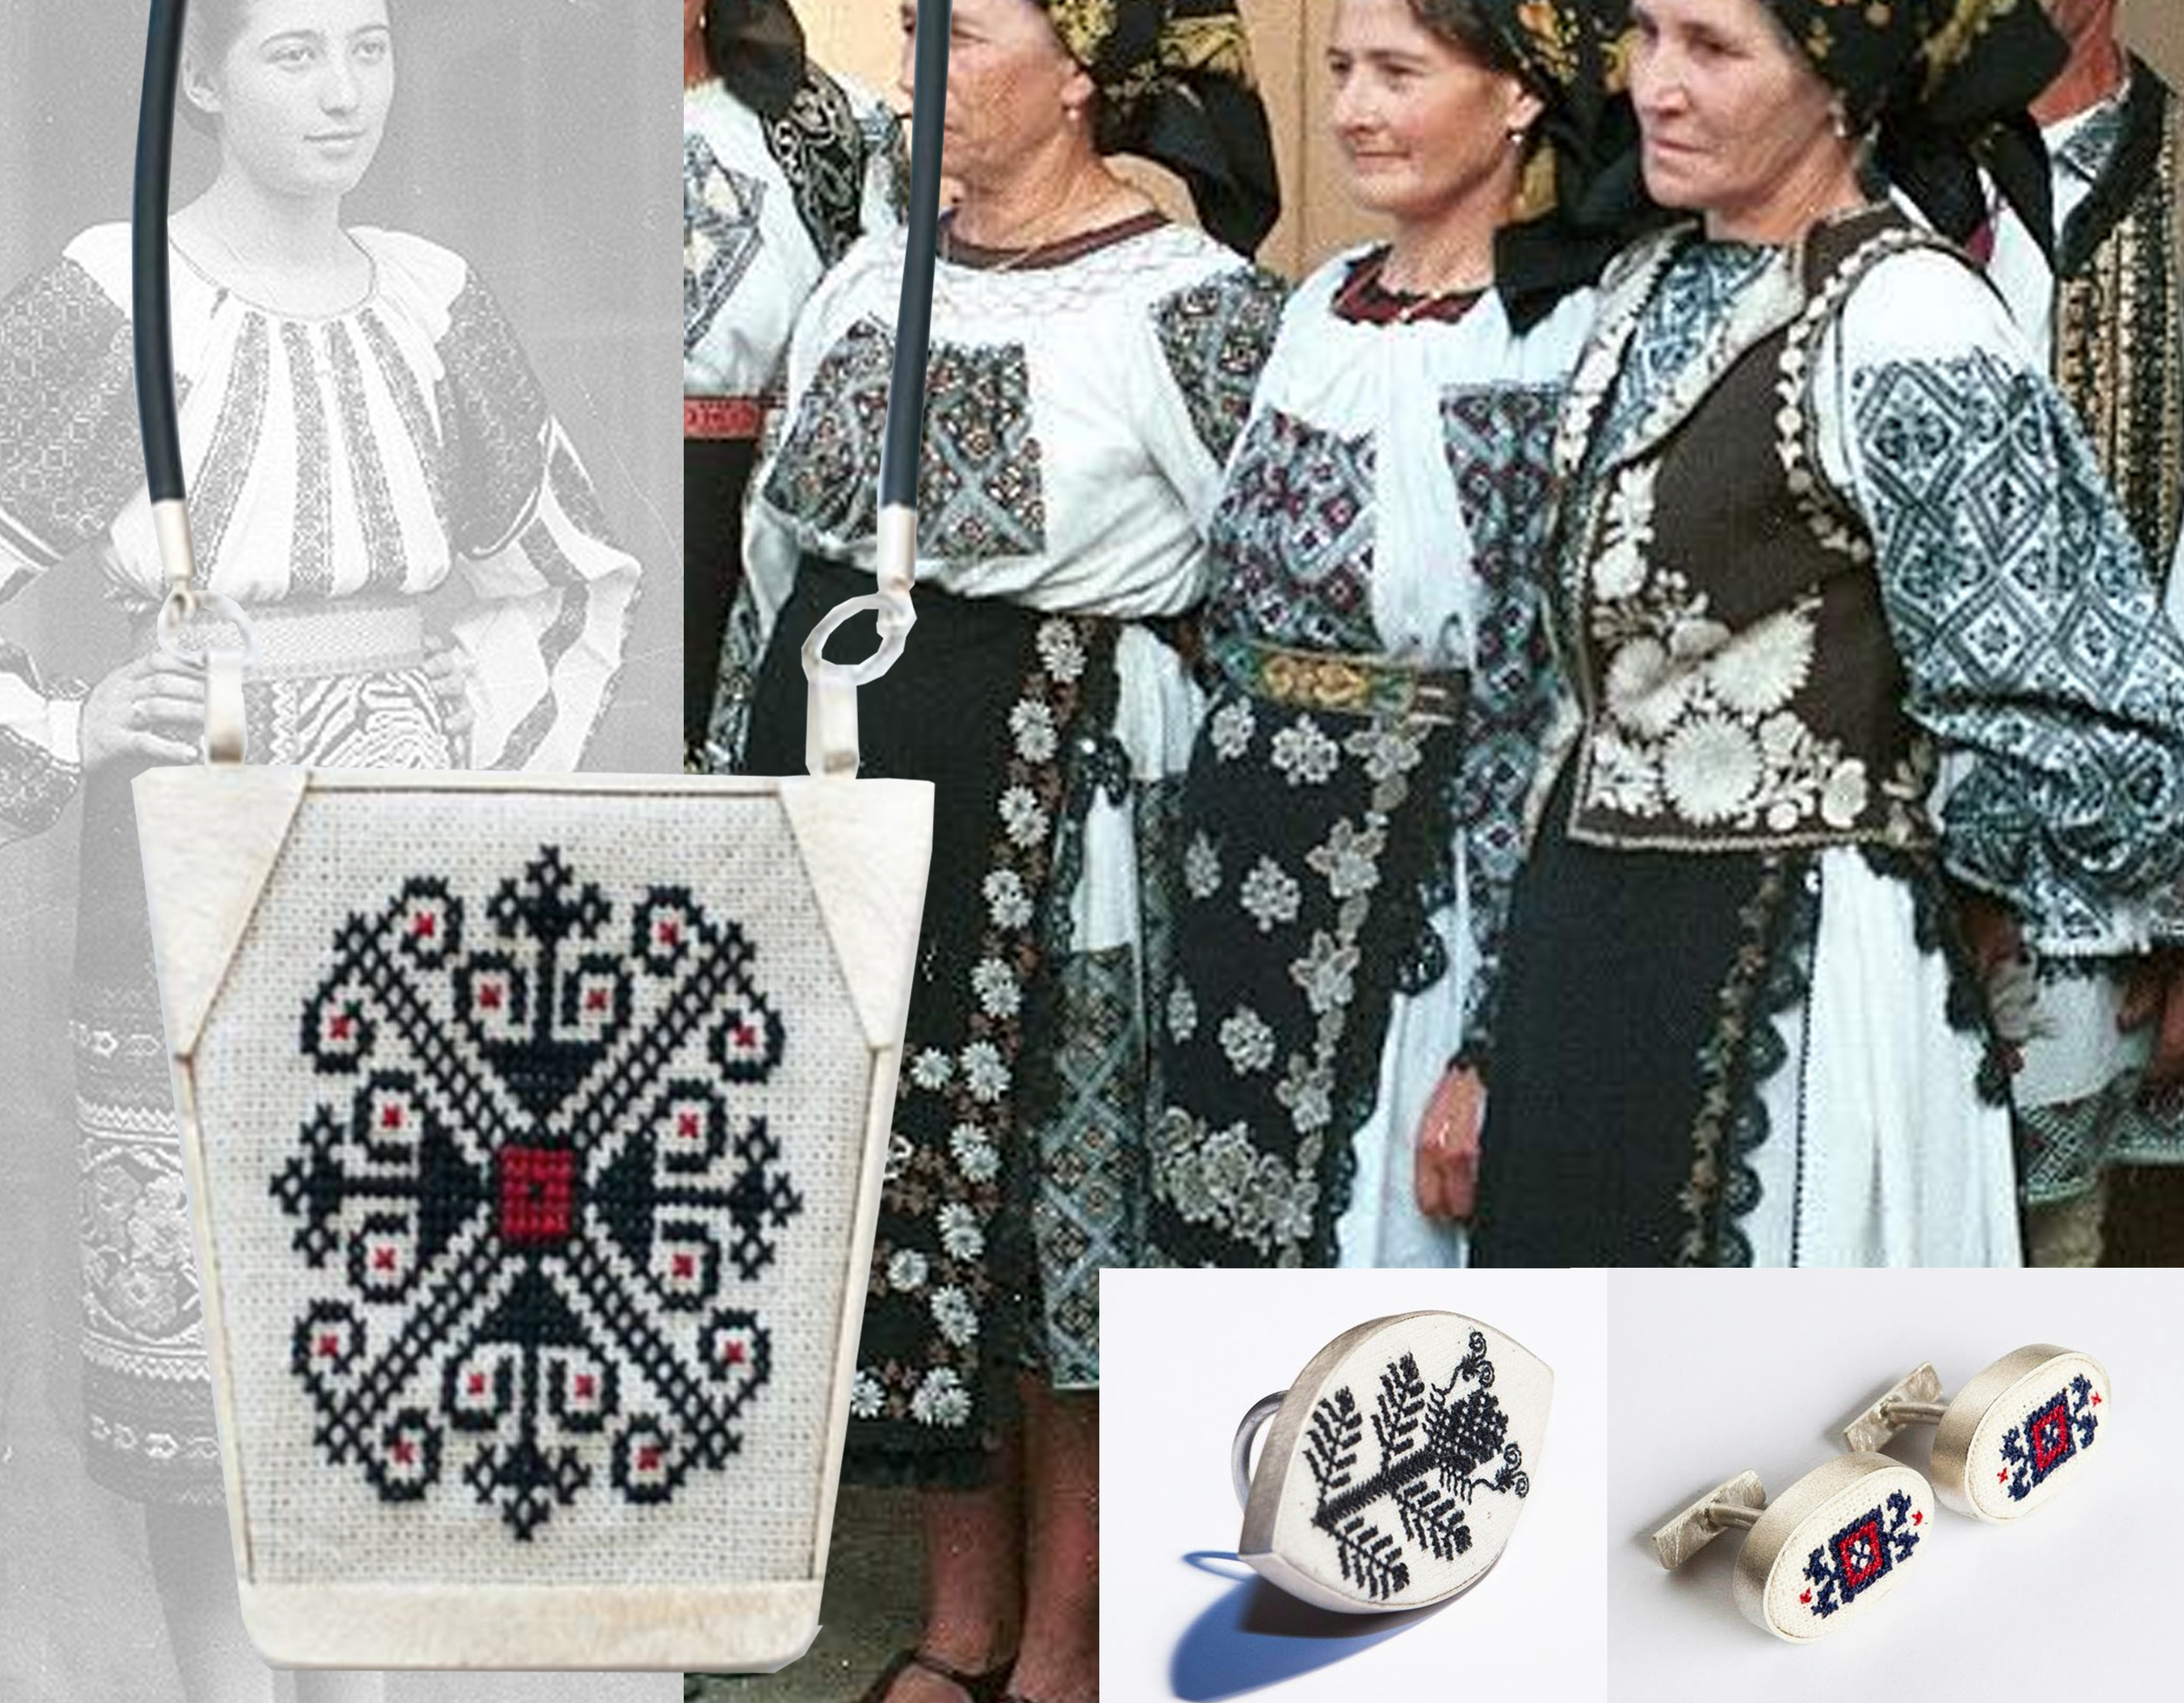 jewellery  Mihaeala Ivana  -woman in traditional dress found on  Pinterest  - women in traditional dresses from Transylvania on  Pinterest